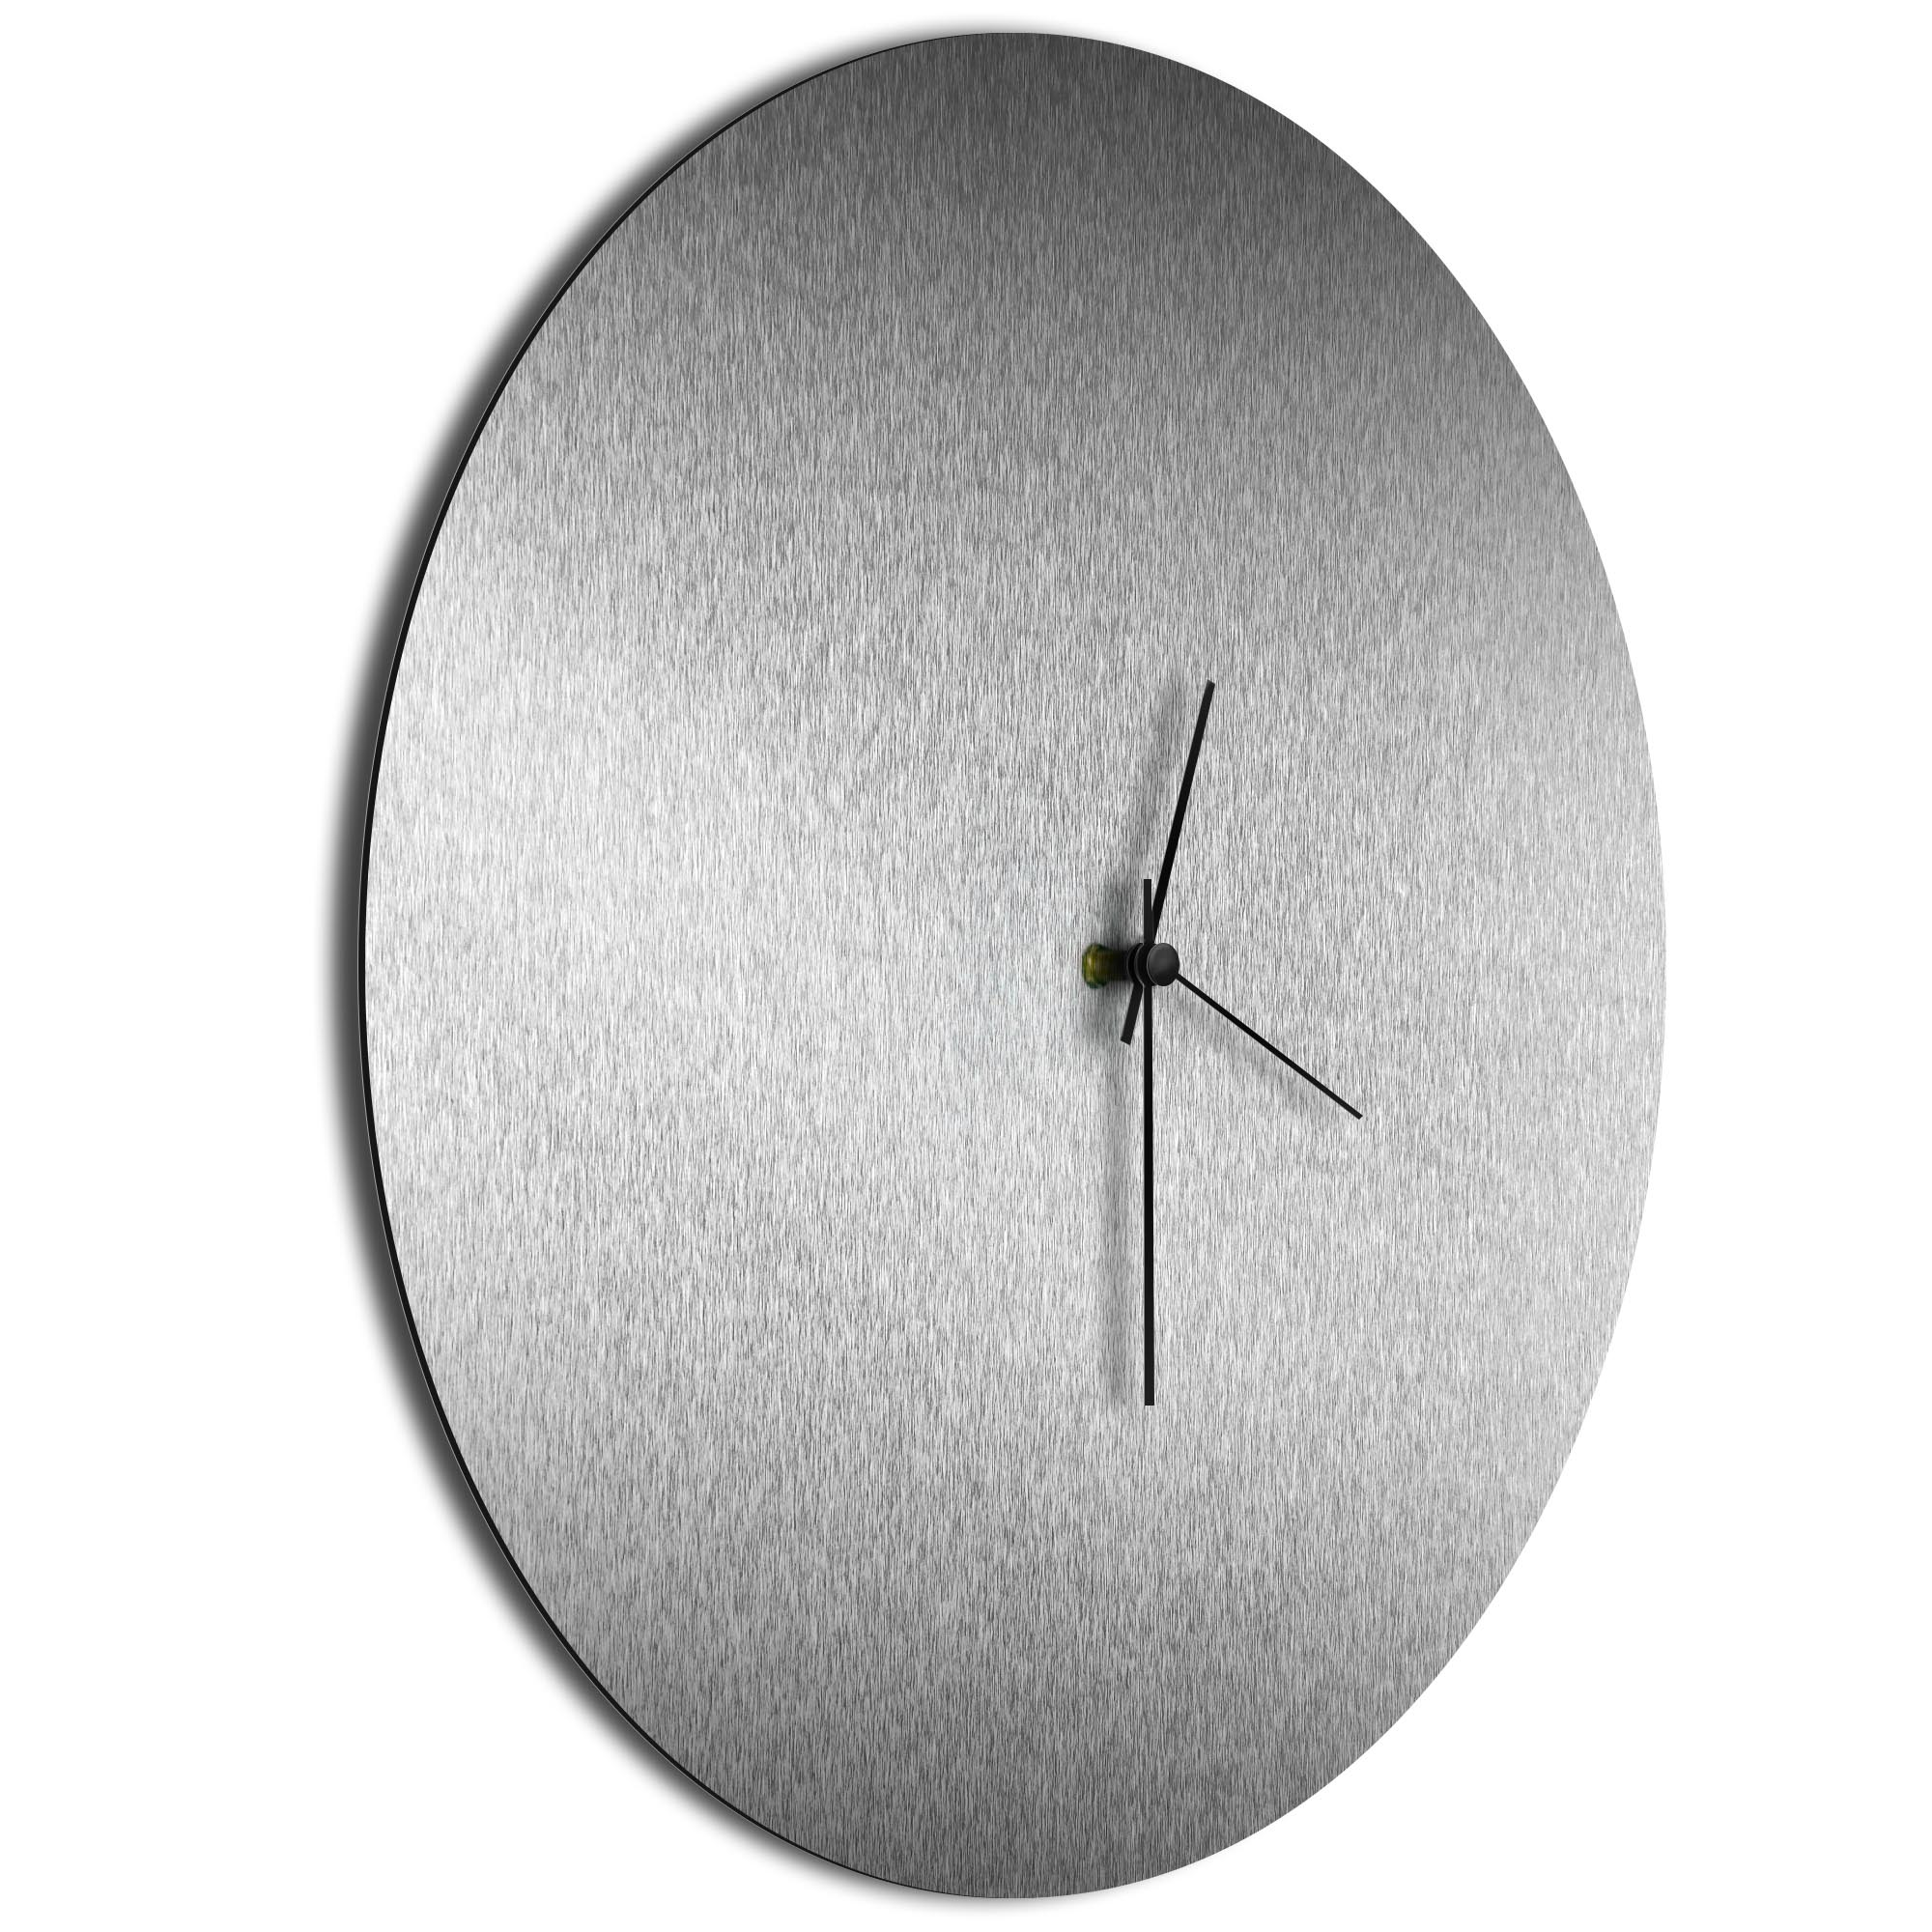 Silversmith Circle Clock Large Black - Image 2